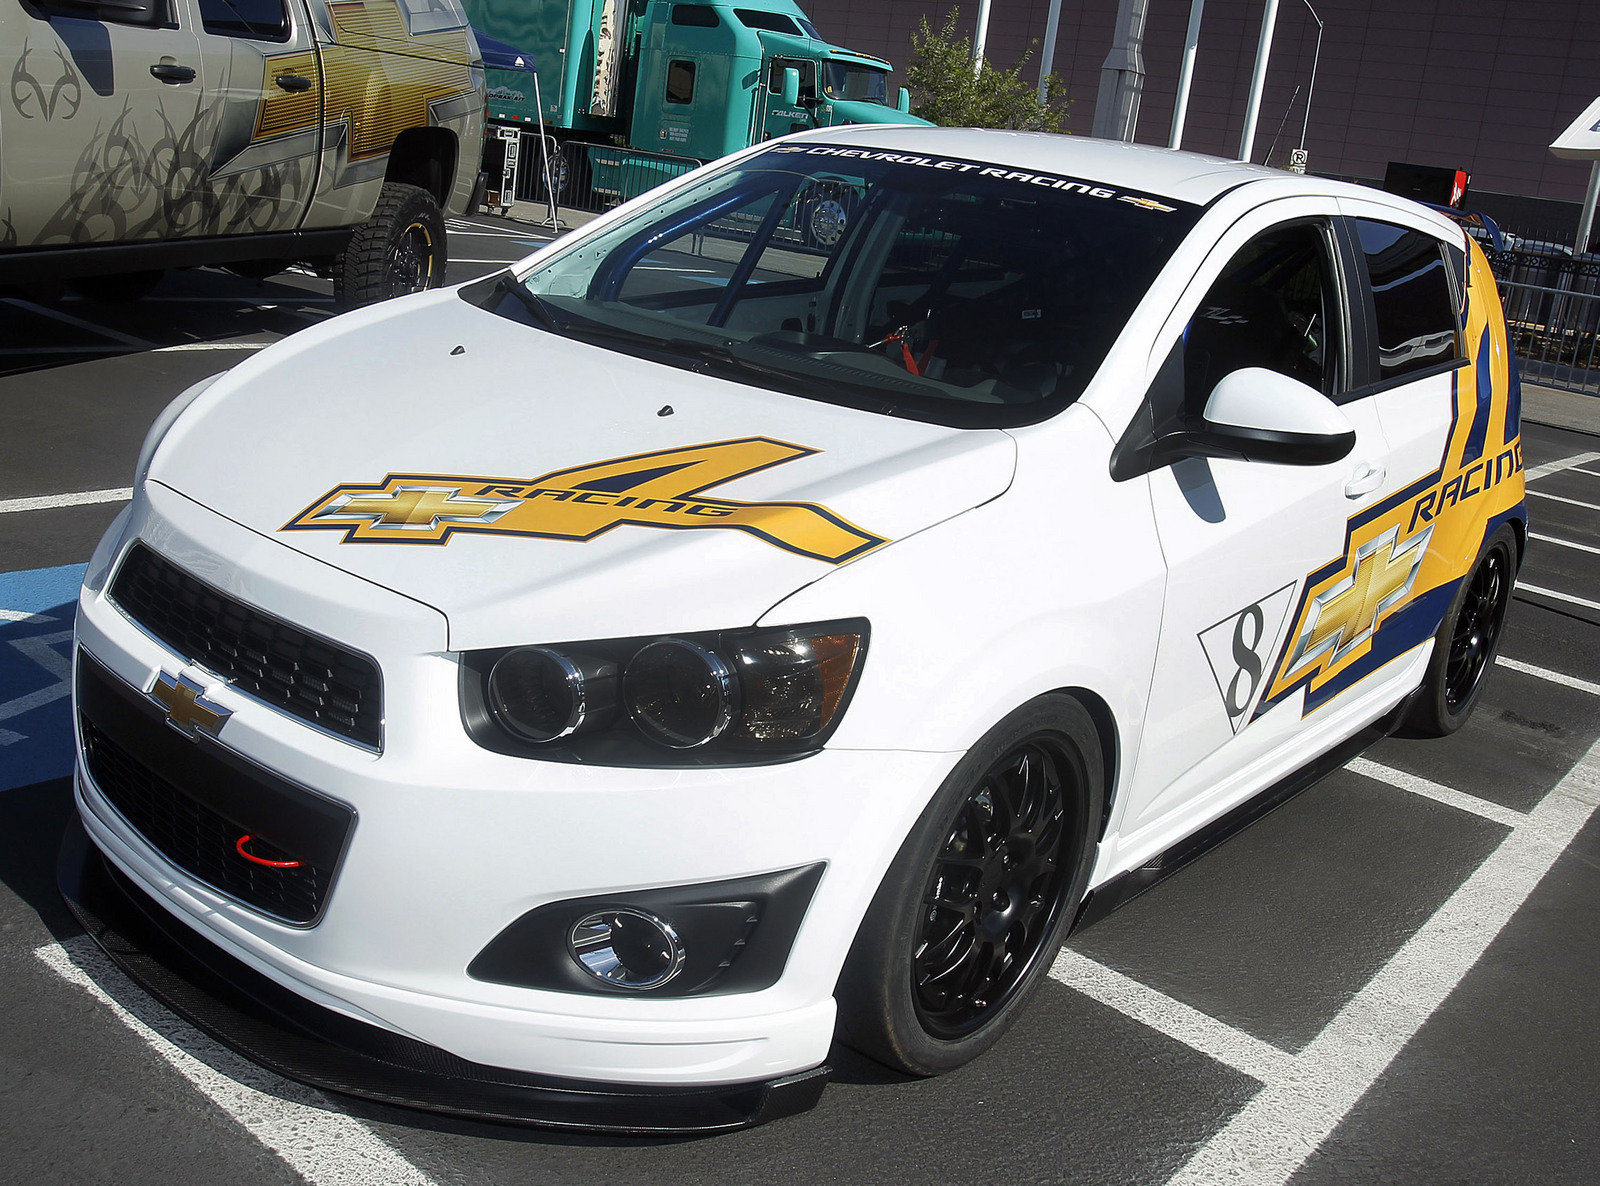 2012 Chevrolet Sonic Super 4 Concept | Top Speed